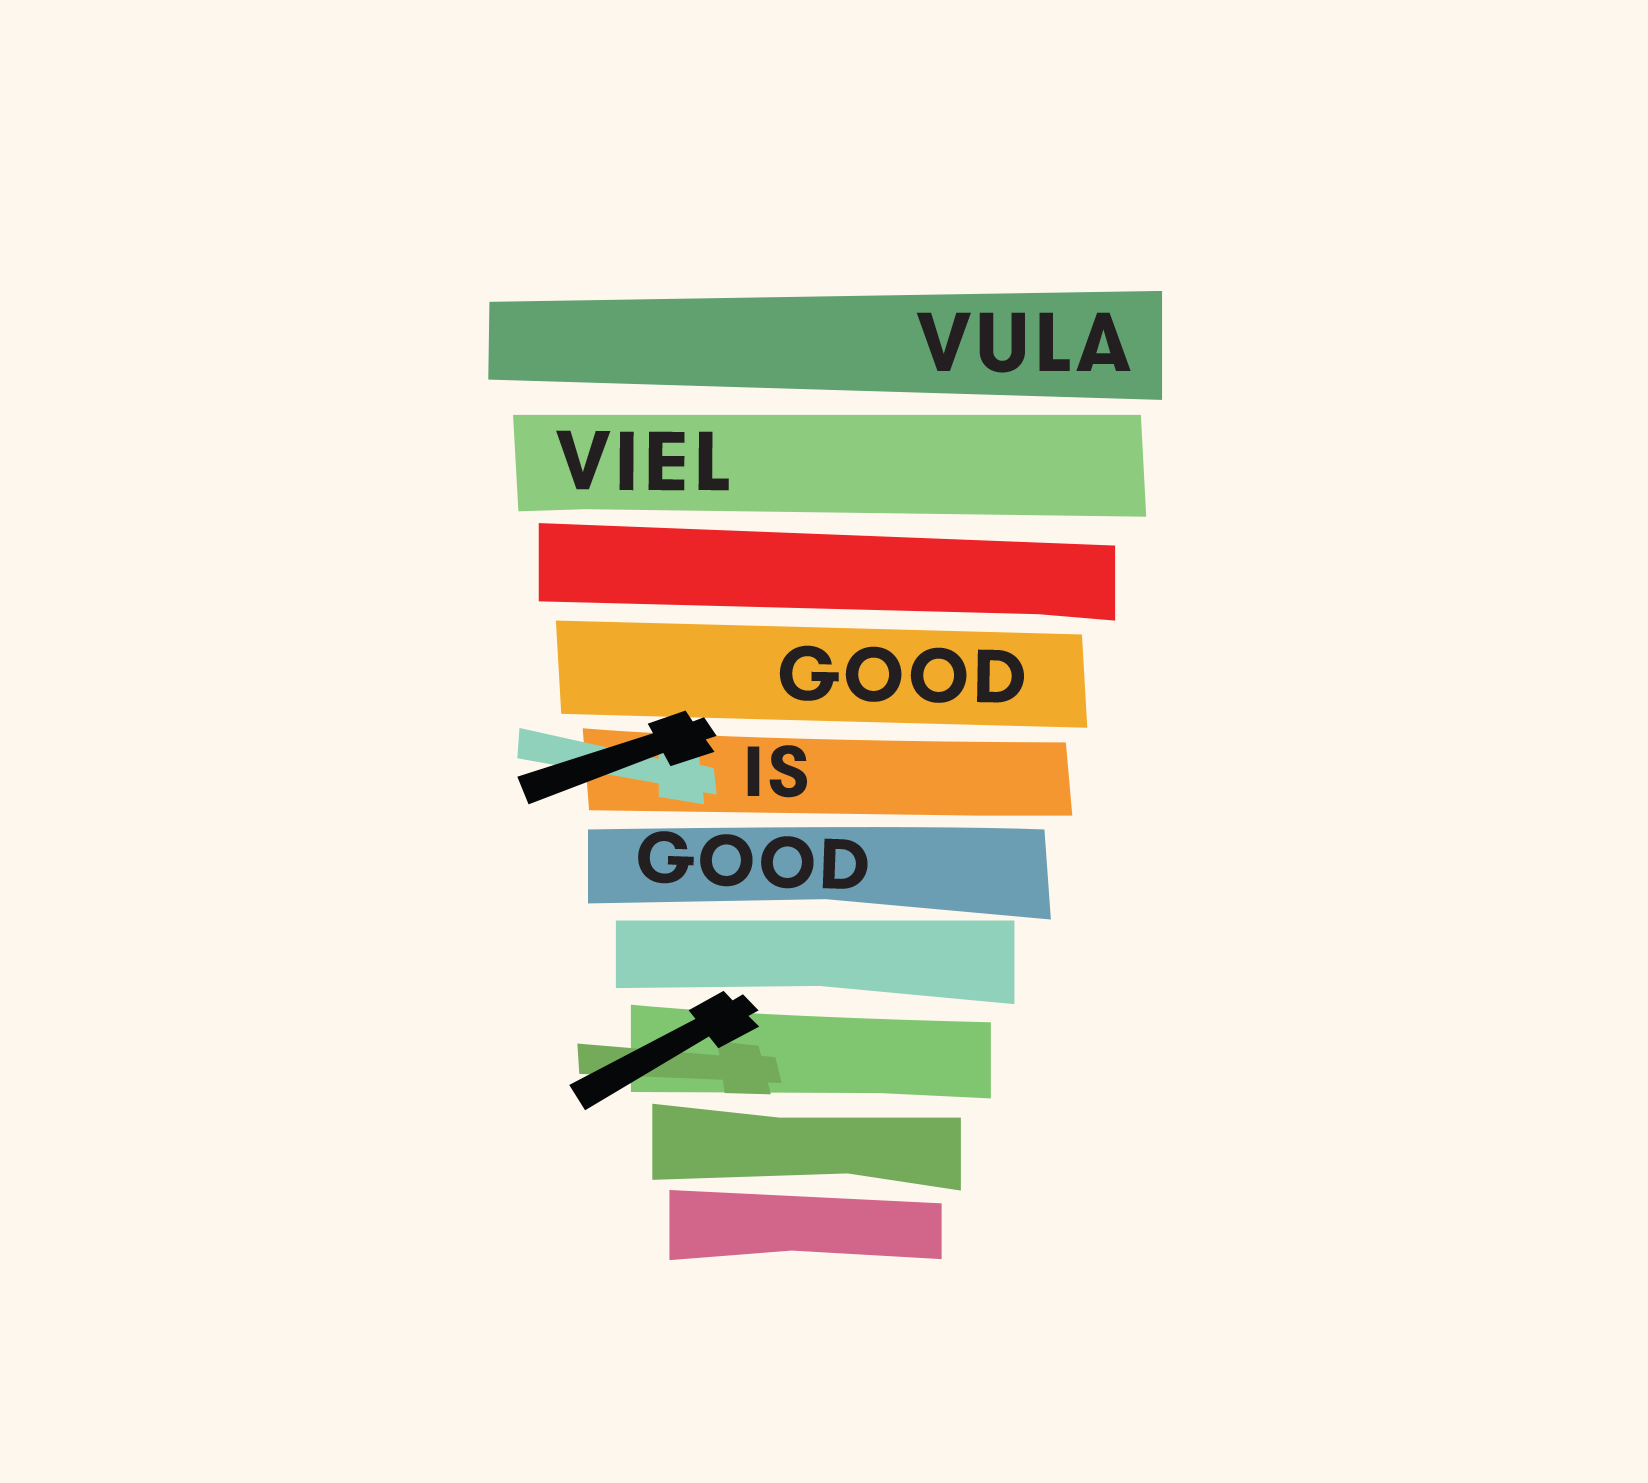 Vula Viel Good Is Good